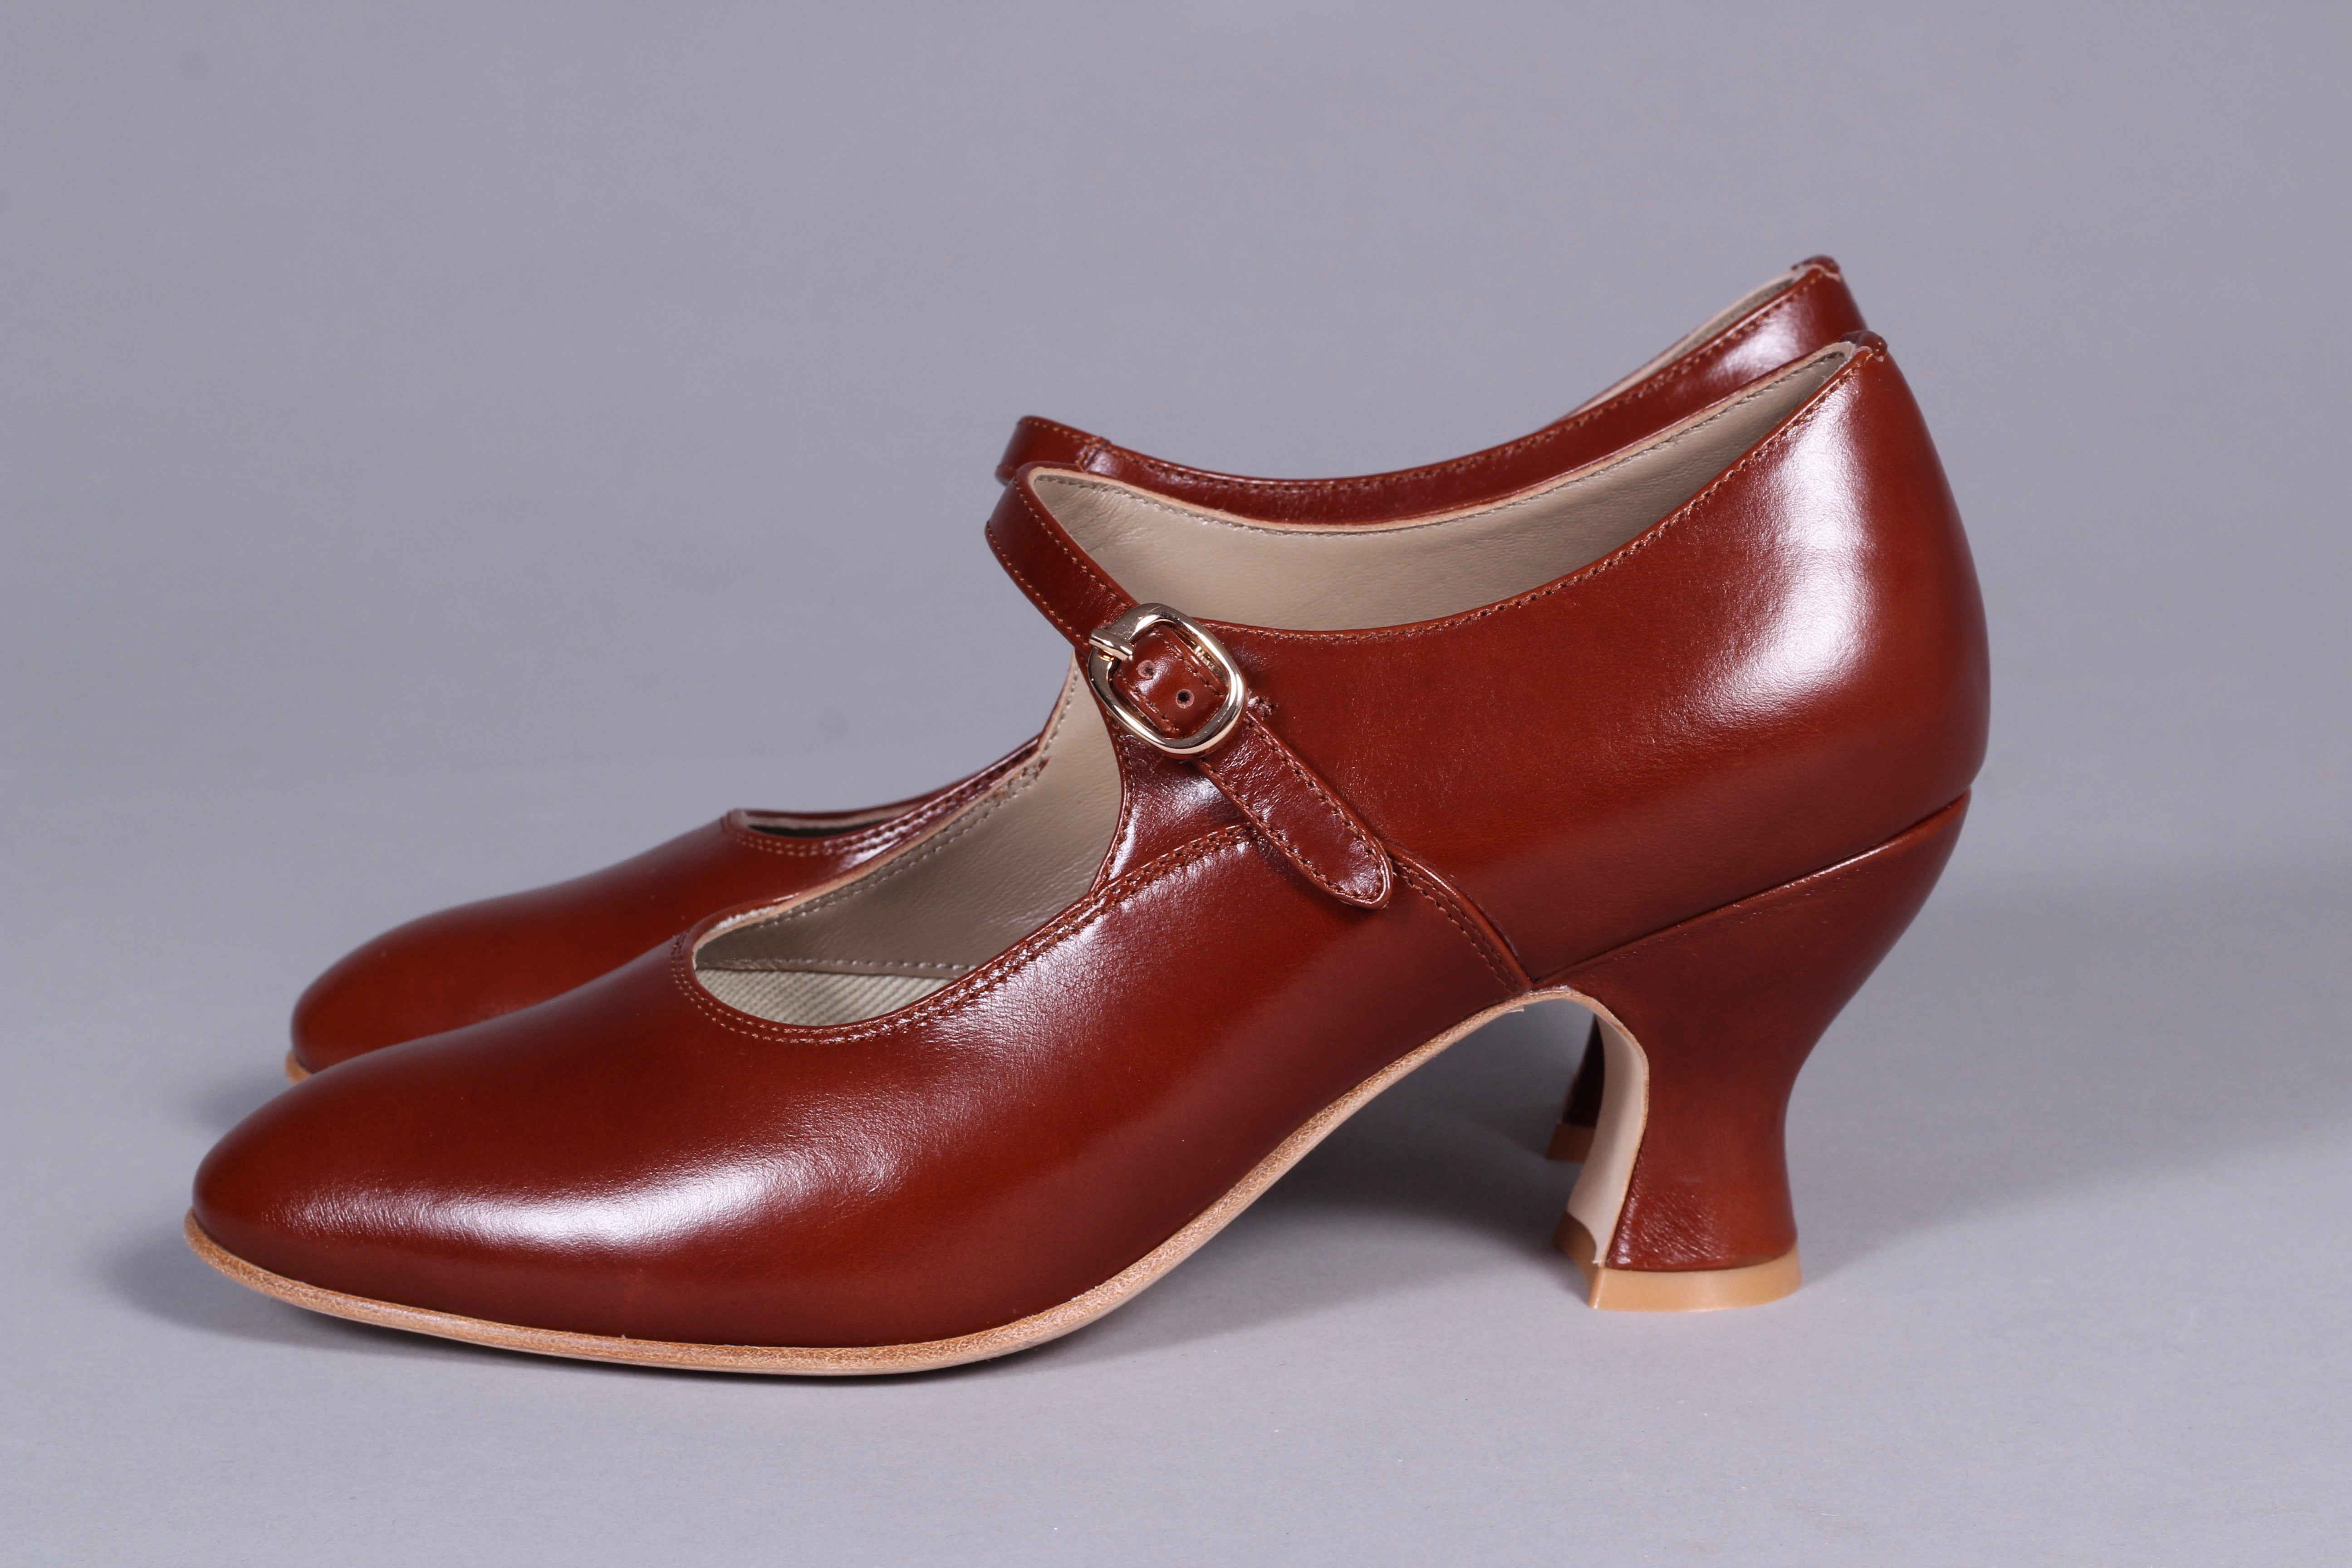 1920's inspired Mary Jane pumps - Cognac brown - Yvonne